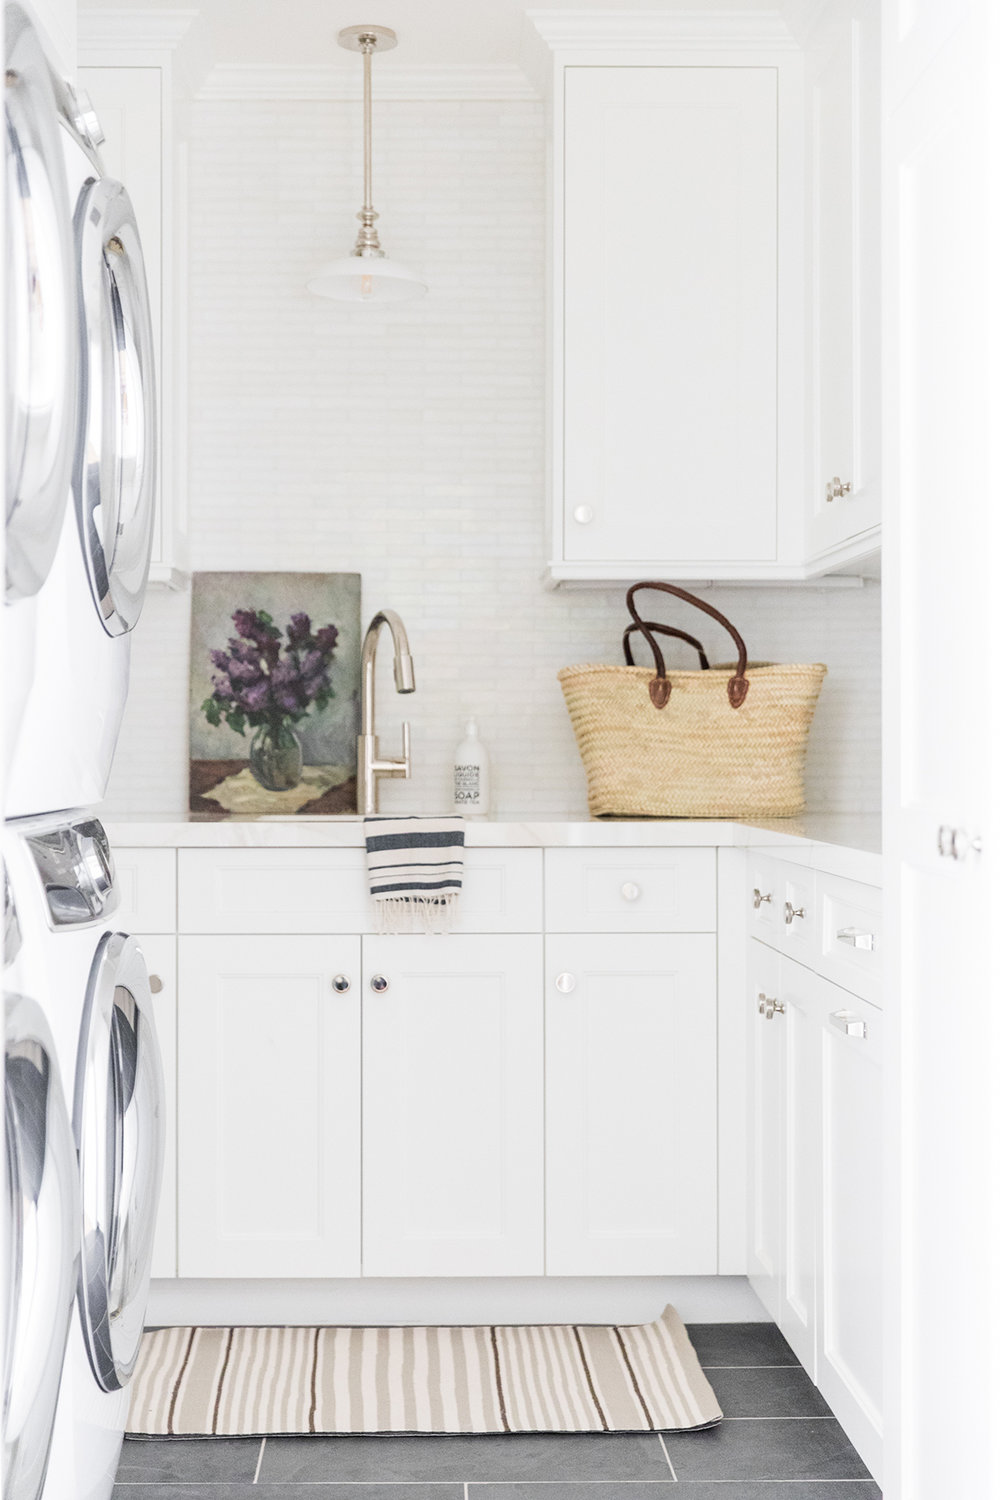 laundry room pendant over sink | studio mcgee design